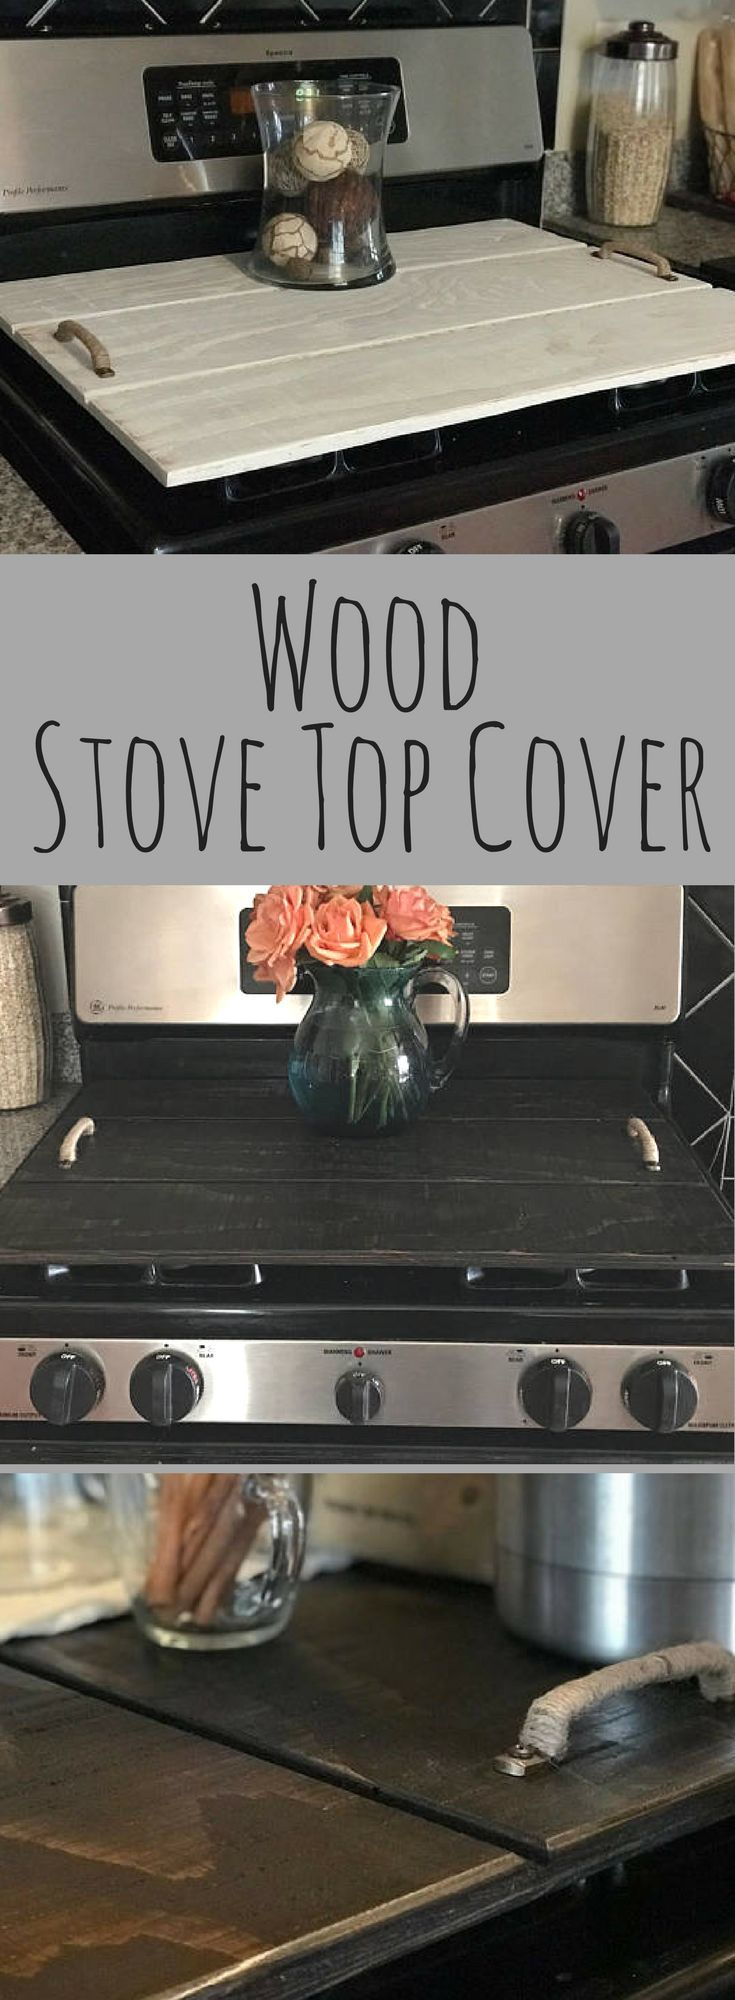 Wood Stove Cover Kitchen Decor Wood Stove Topper Oven Wood Tray Shiplap Style Cover Rustic Kitchen Decor Farm Sweet Home Kitchen Decor Primitive Kitchen